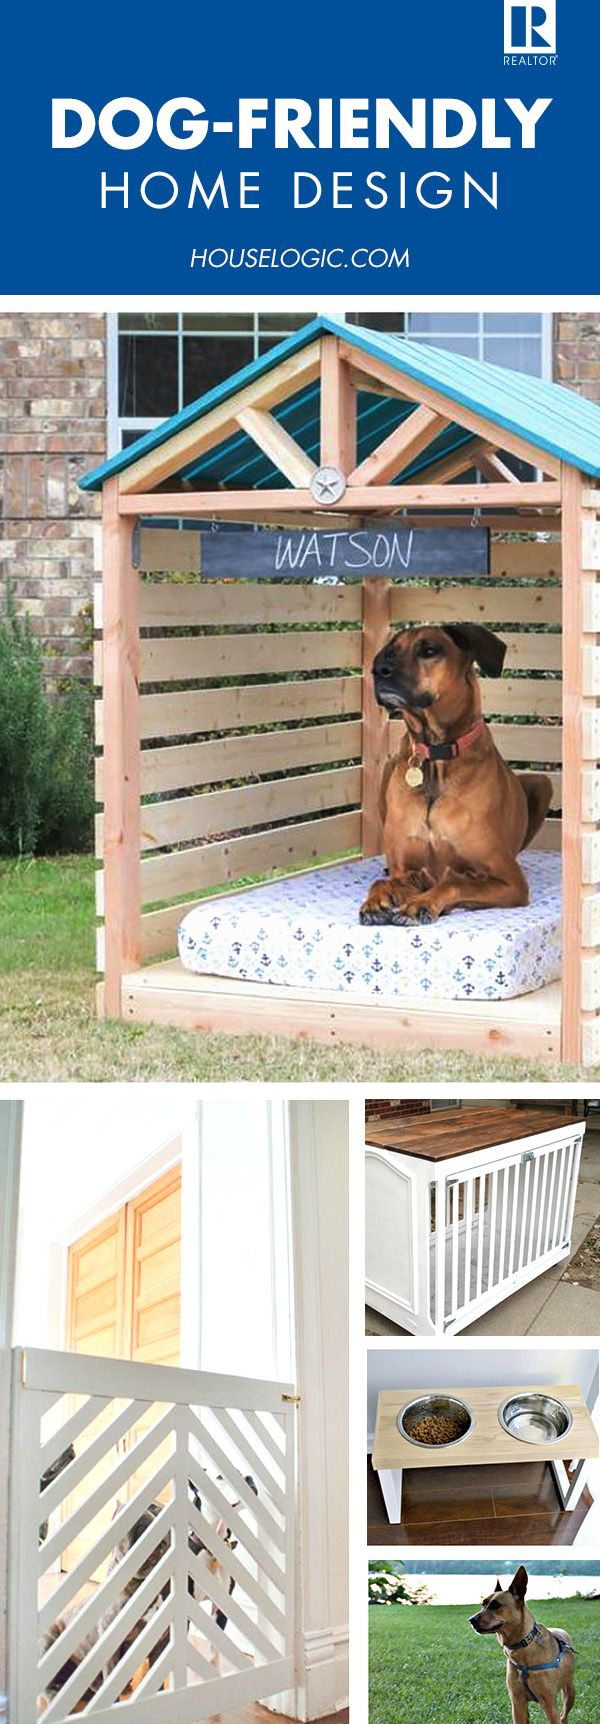 4 Ways To Make Fido Happy In Your New Home Dog House Diy Diy Dog Stuff Dog Houses [ 1724 x 600 Pixel ]